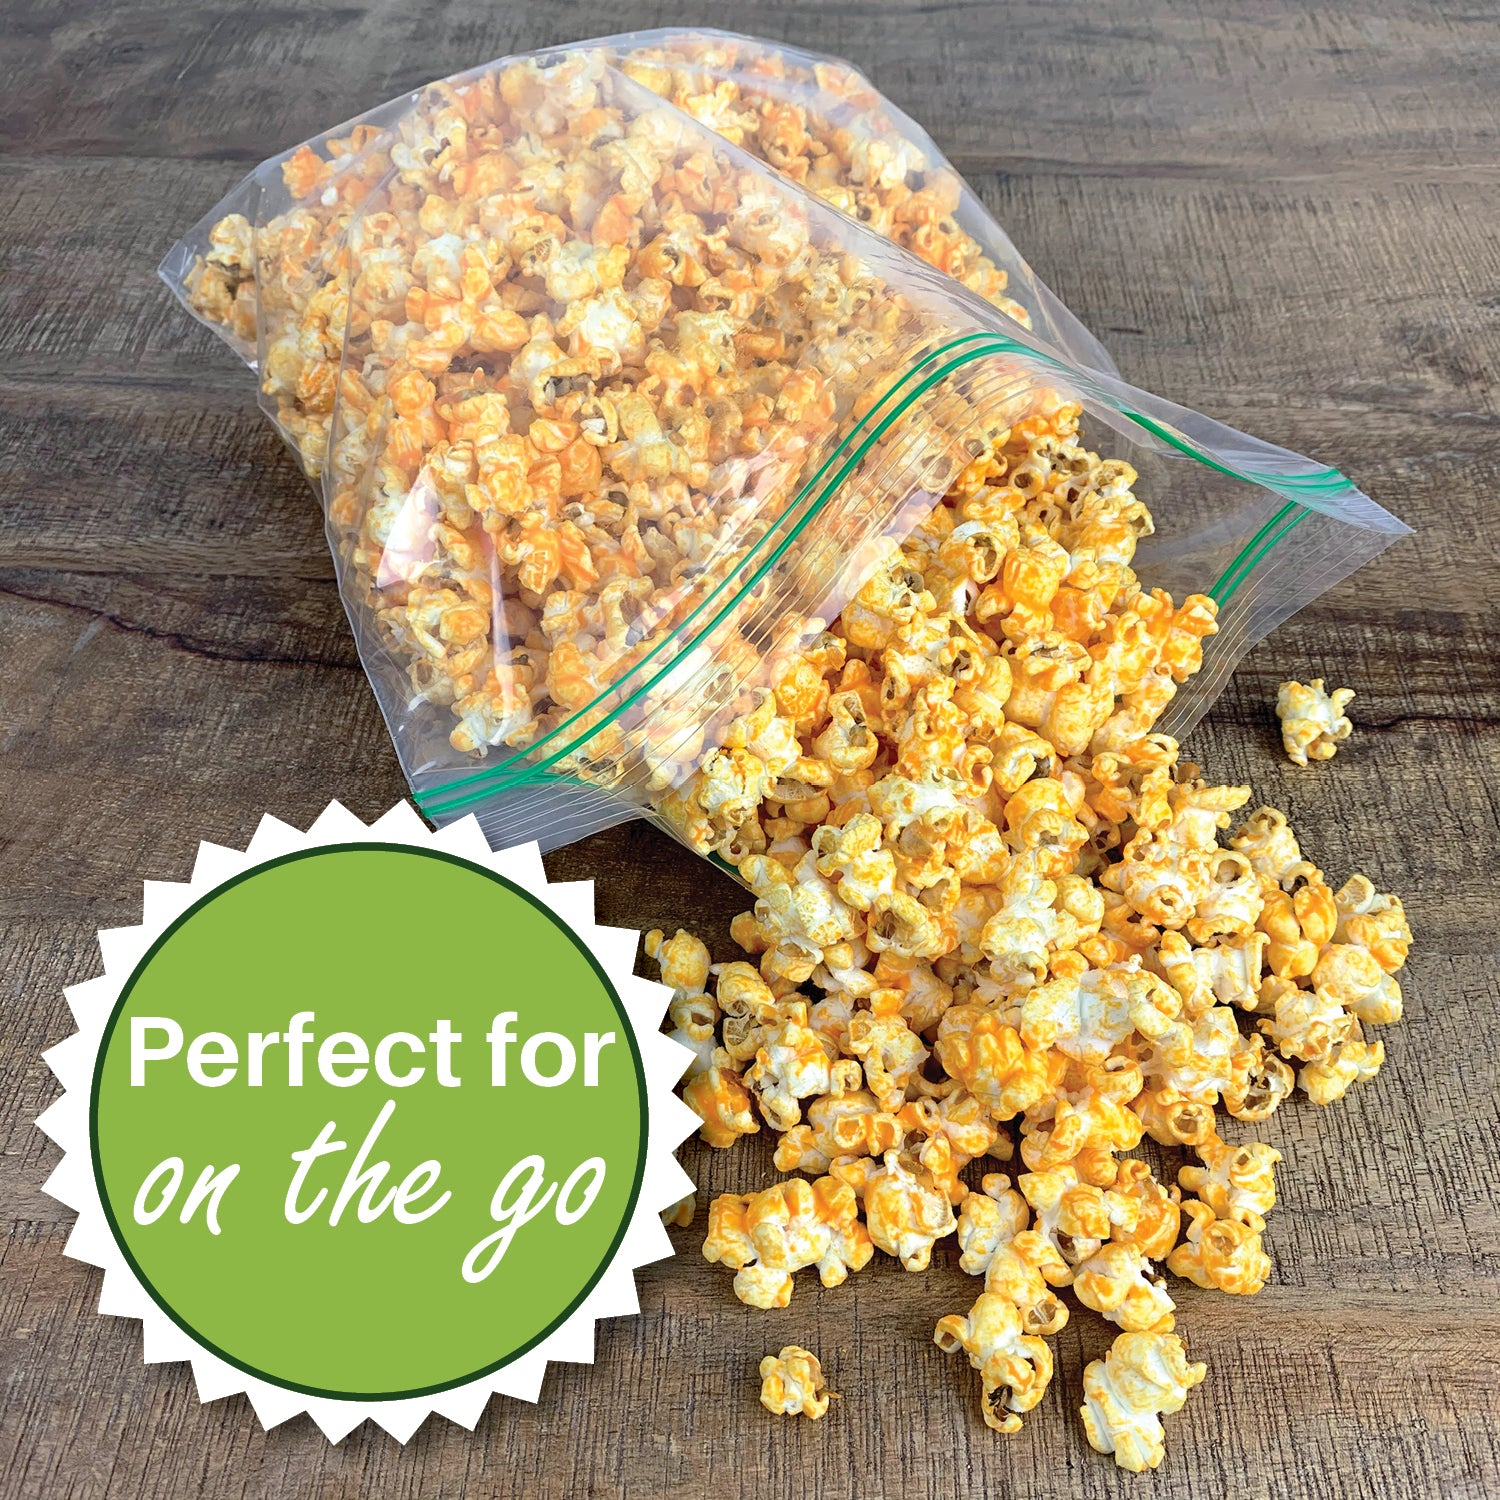 perfect for on the go, double zipper food storage bags